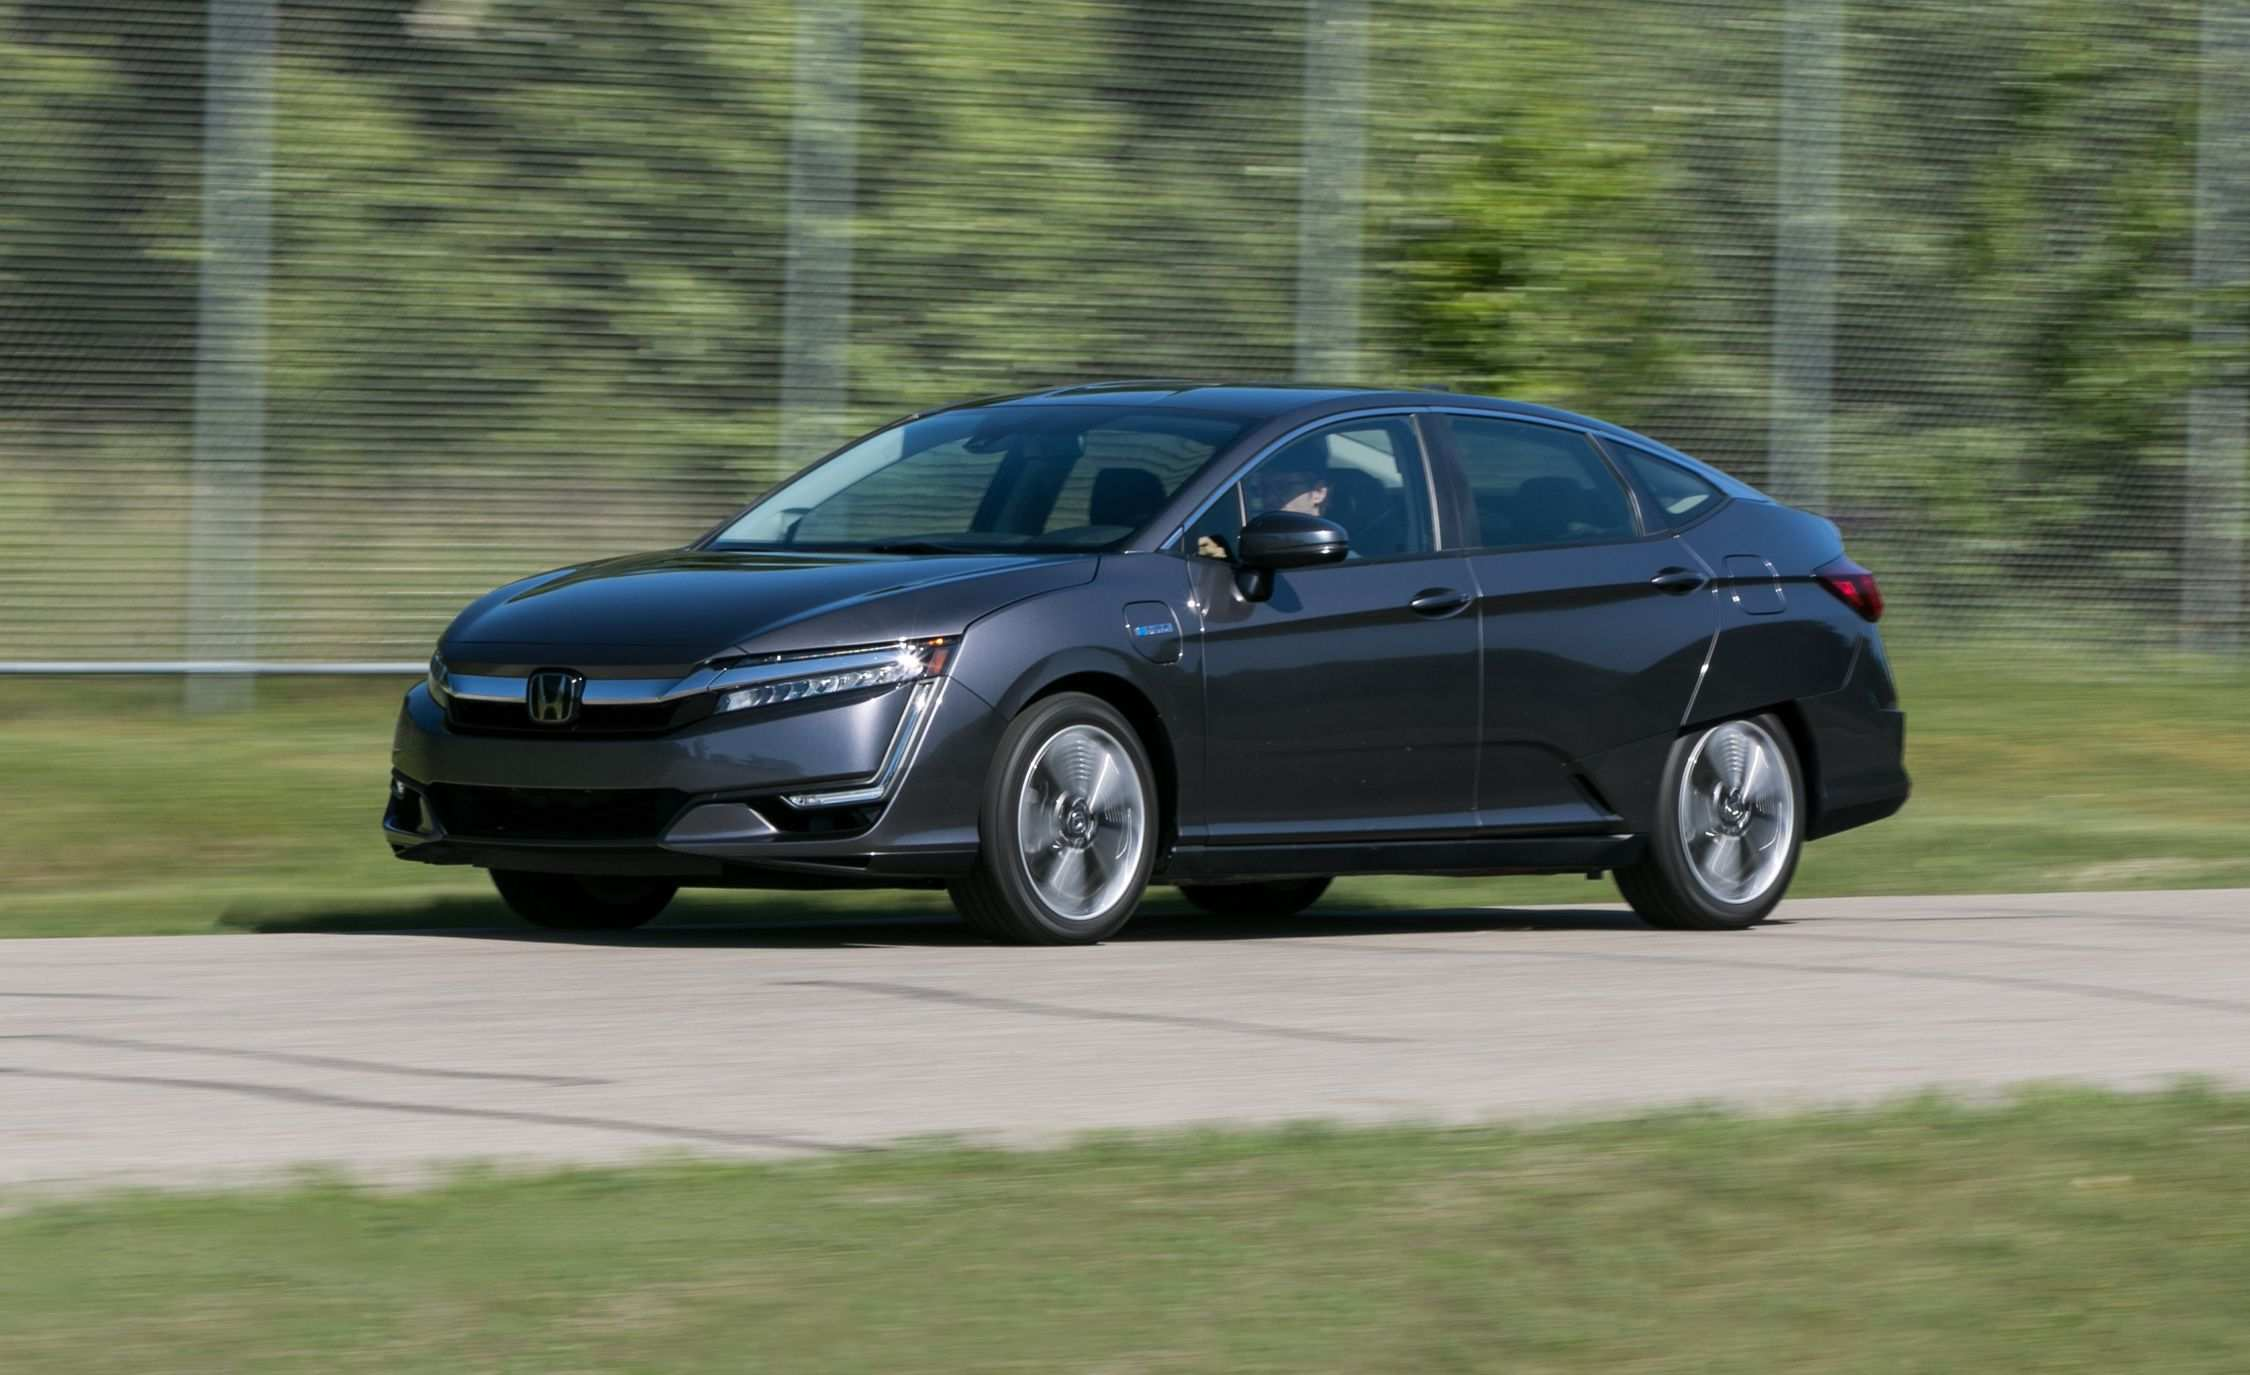 51 Best Review The Clarity Honda 2019 Review Research New by The Clarity Honda 2019 Review